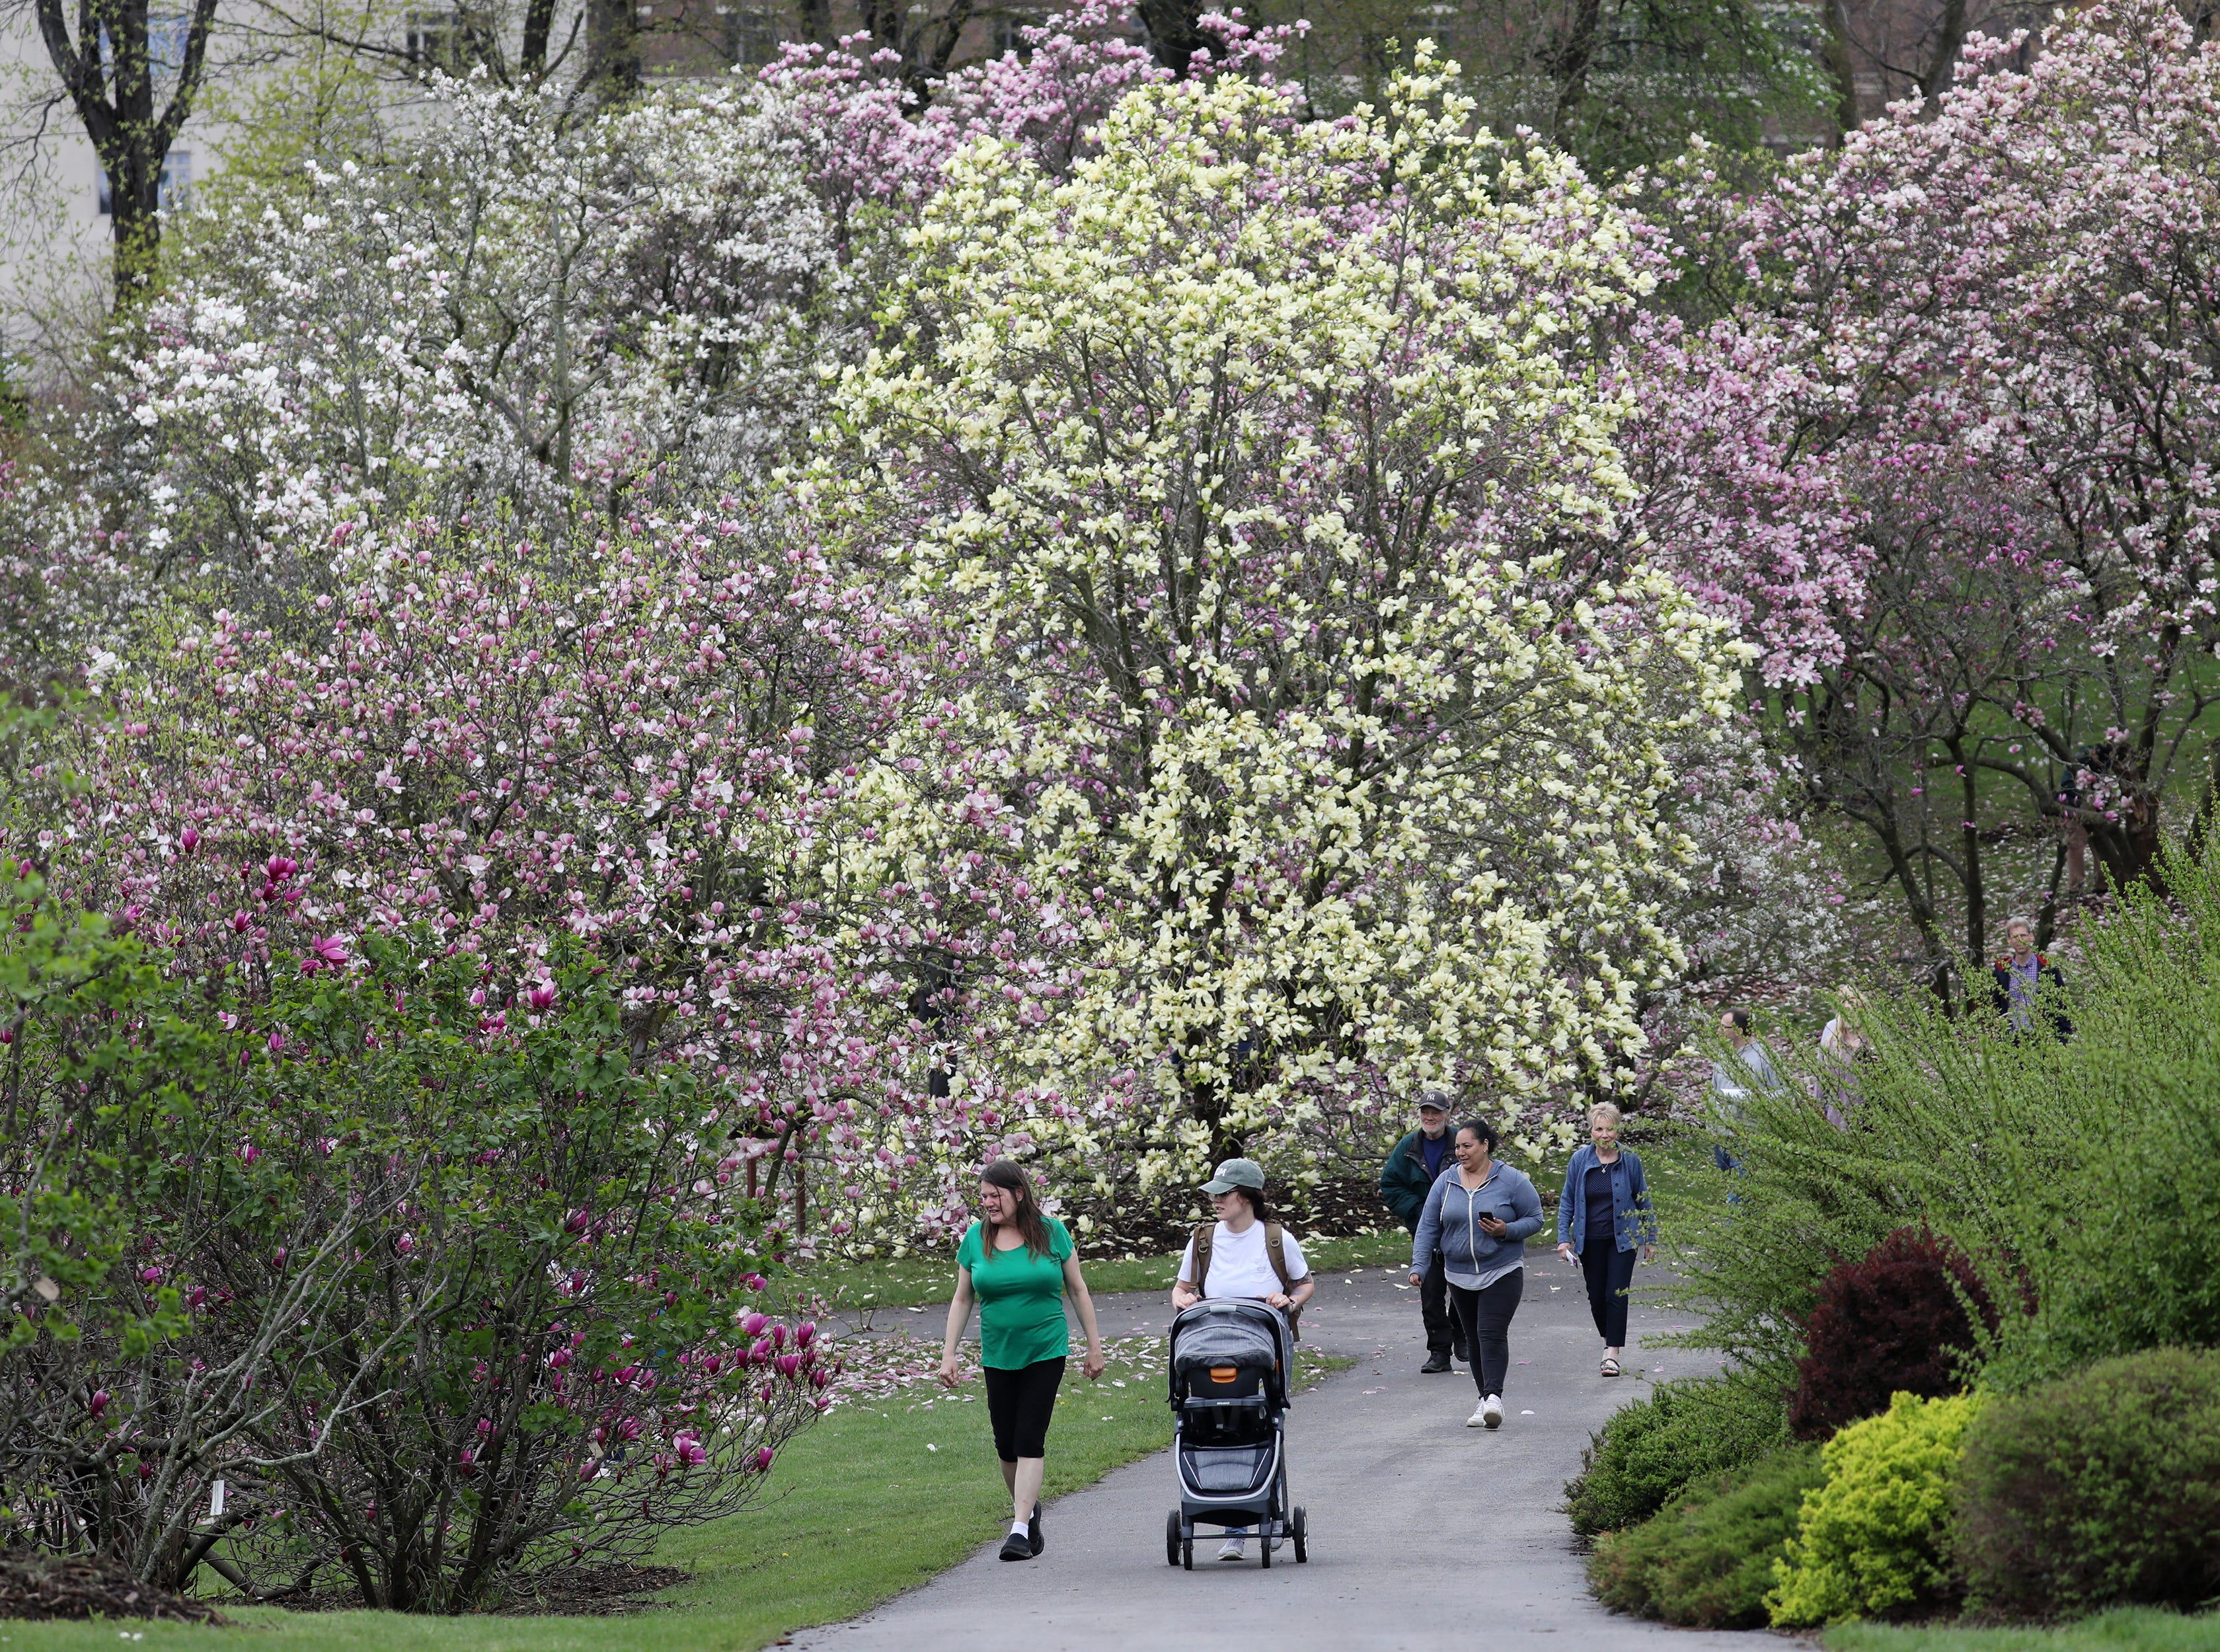 Opening day of the 2019 Lilac Festival.